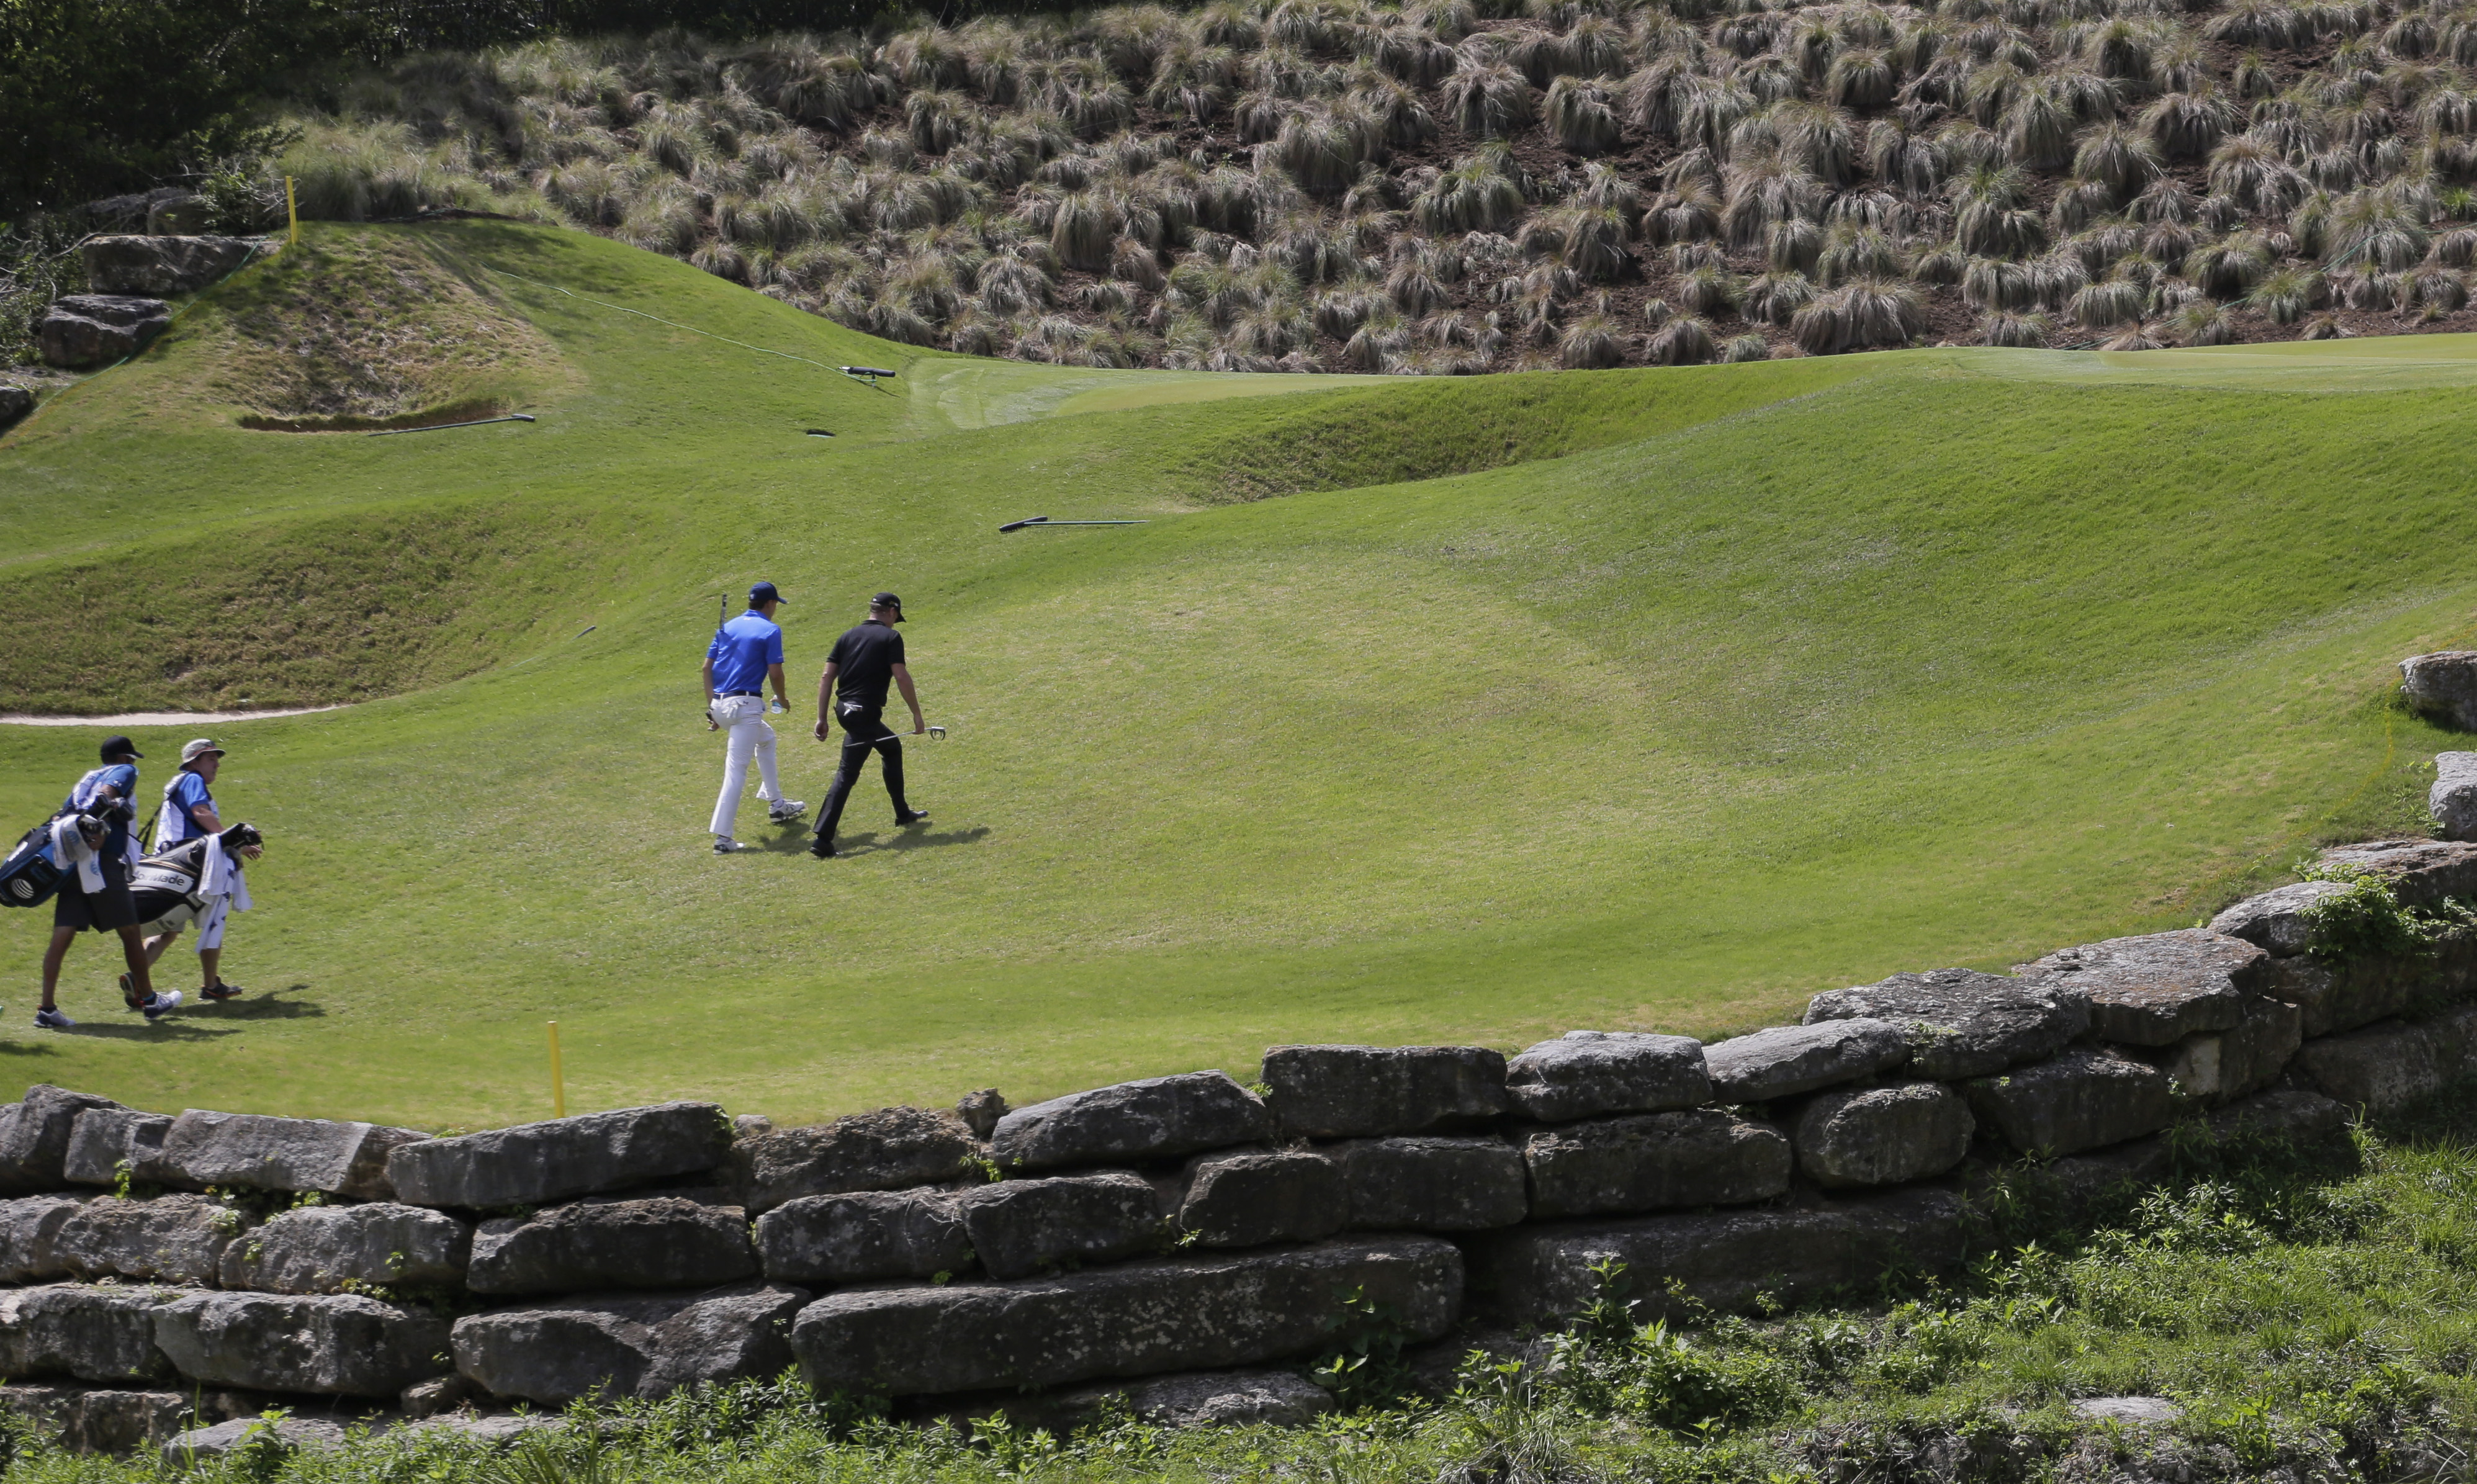 Jamie Donaldson of Wales, right, and Jordan Spieth, second from right, walk on the fairway on the fourth hole during round-robin play at the Dell Match Play Championship golf tournament at Austin County Club, Wednesday, March 23, 2016, in Austin, Texas. (